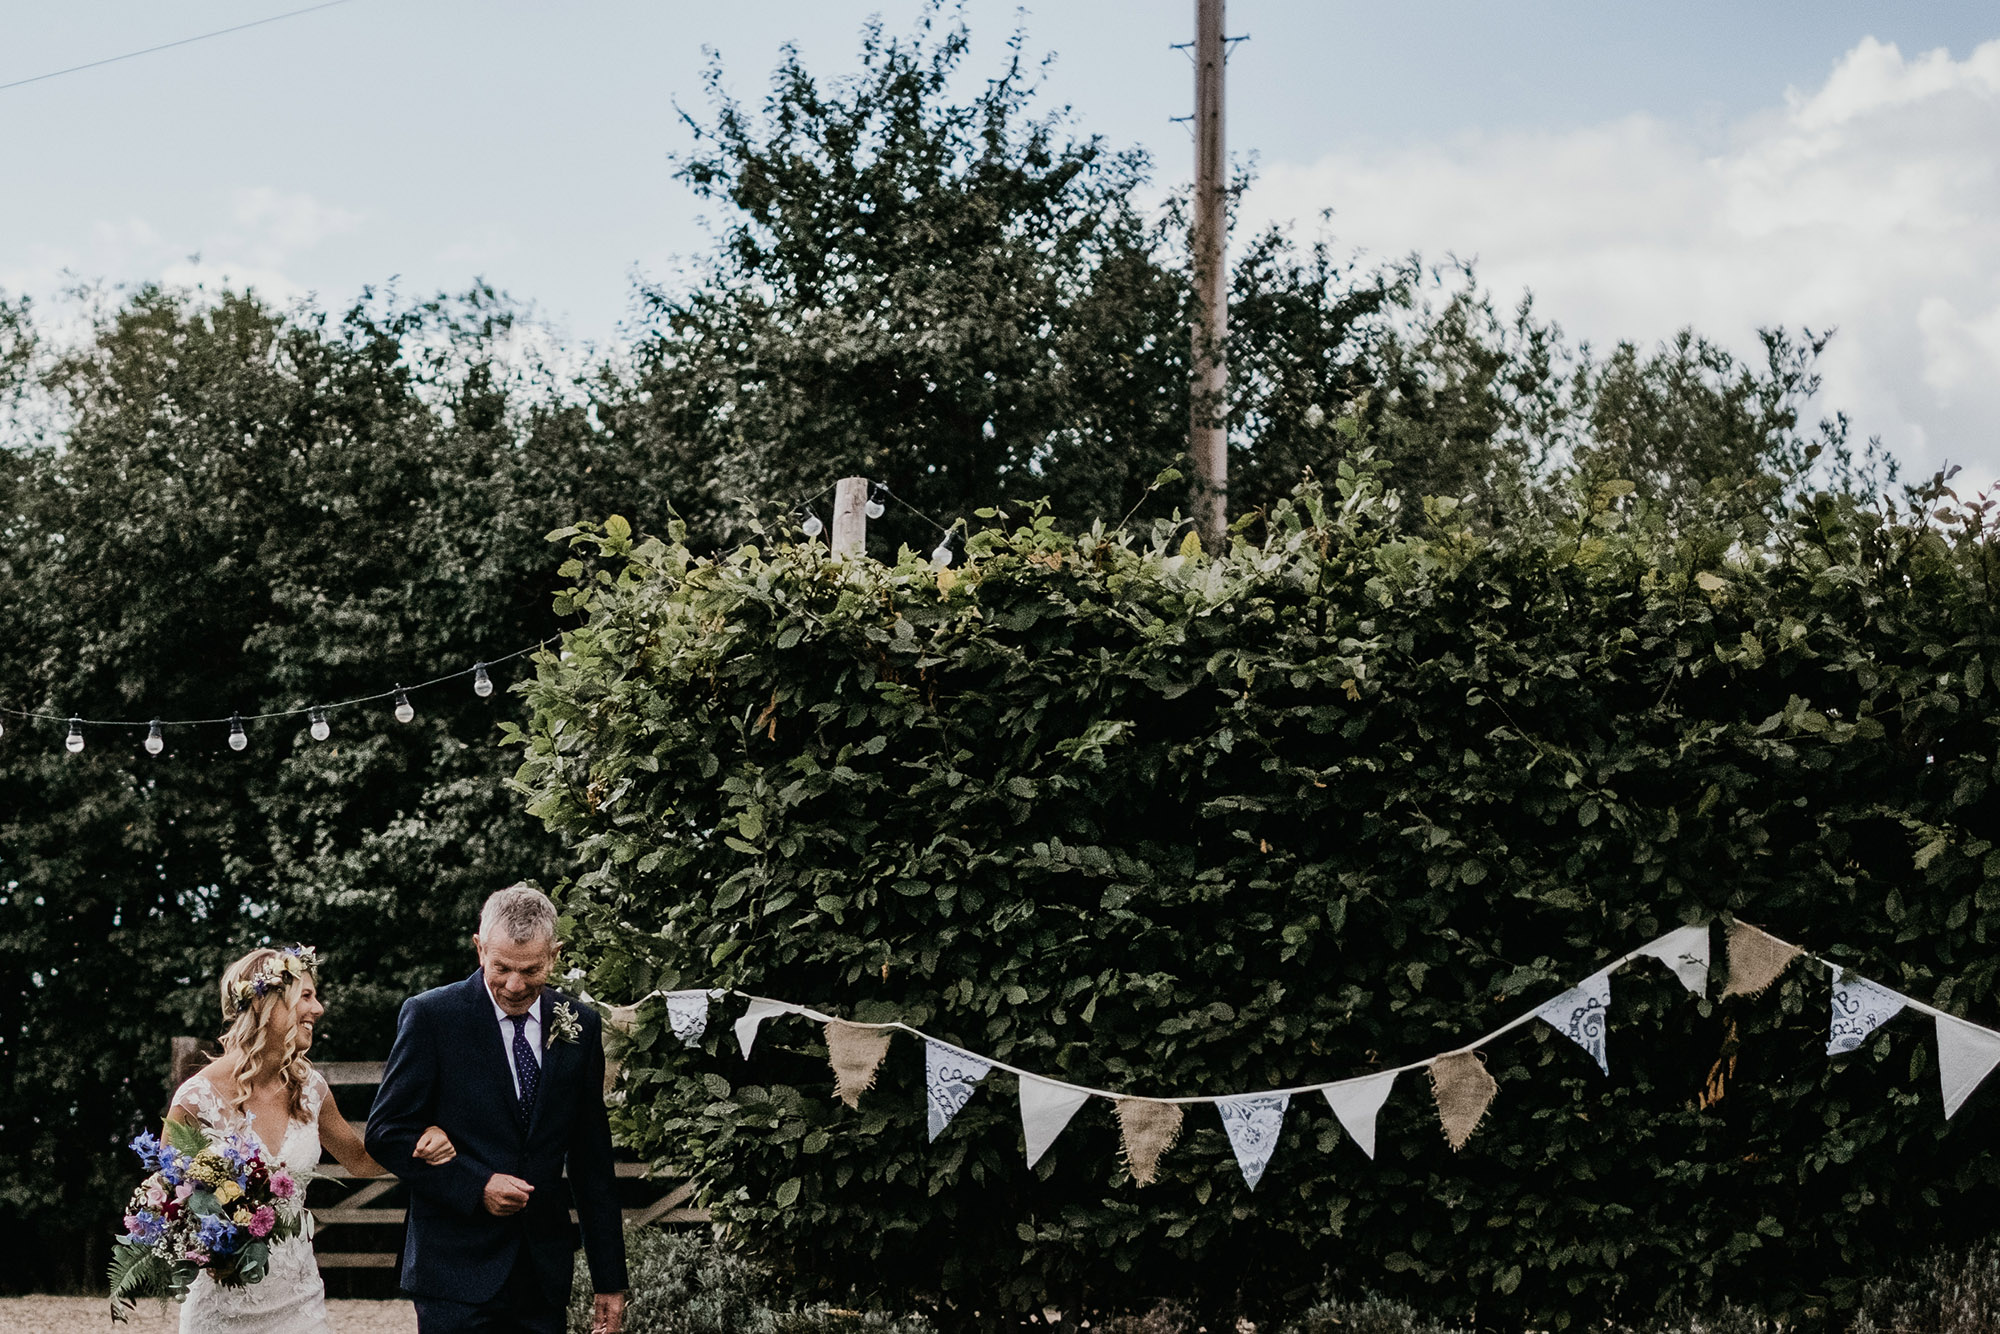 KENT WEDDING PHOTOGRAPHY - SOUTH EAST ENGLAND WEDDING PHOTOGRAPHER